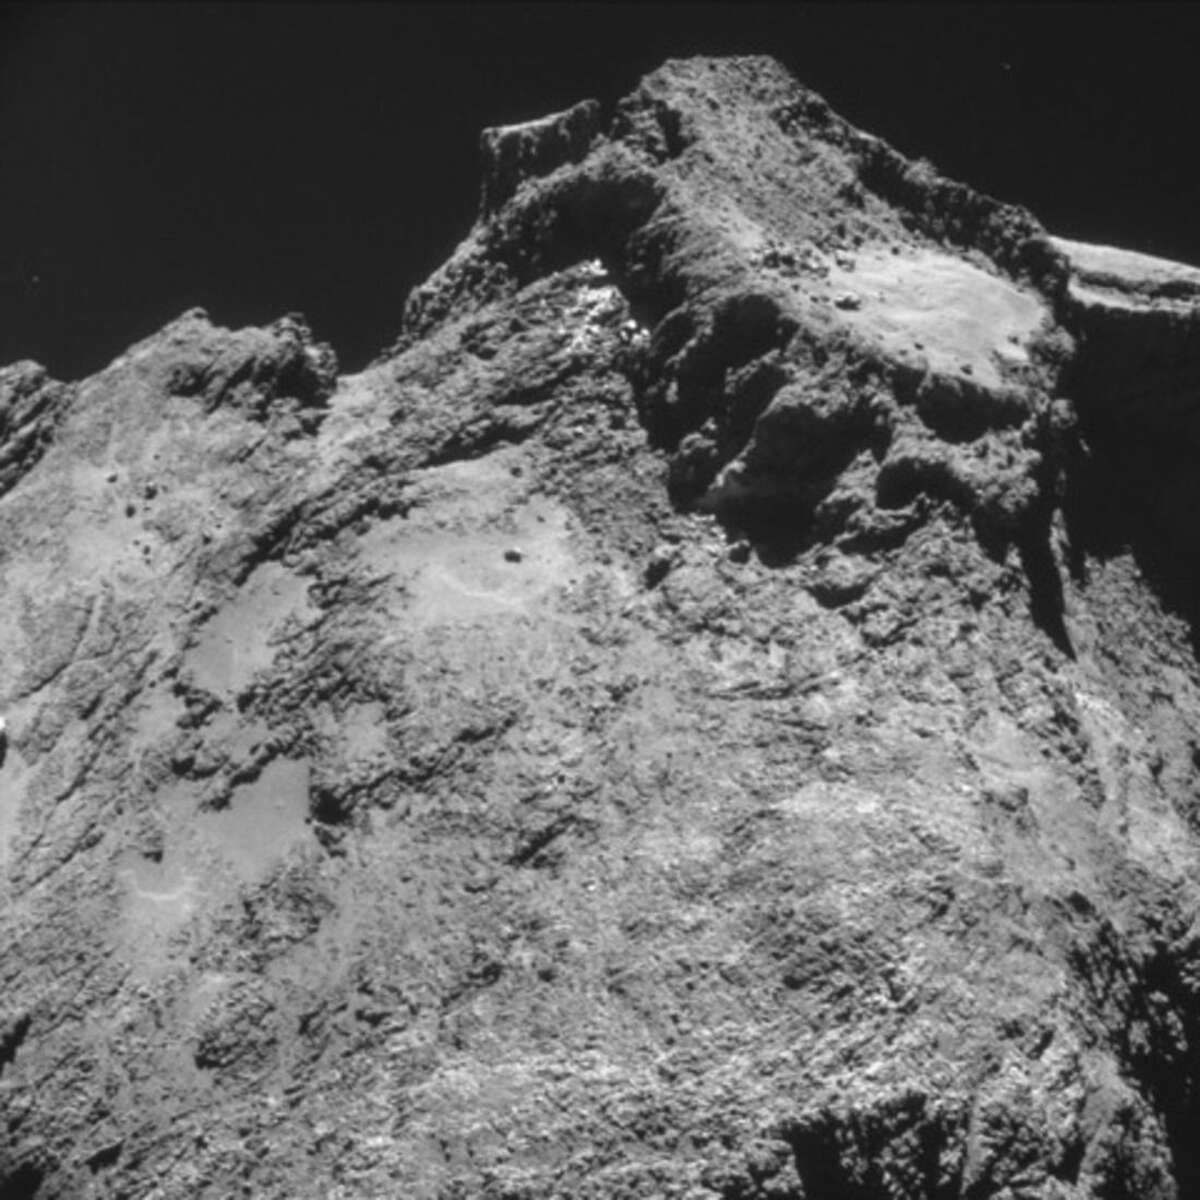 The picture taken with the navigation camera on Rosetta and released by the European Space Agency ESA shows a raised plateau on the larger lobe of Comet 67P/Churyumov-Gerasimenko. It was captured from a distance of 9.8 km from the center of the comet (7.8 km / 4.8 miles from the surface) Oct. 24, 2014. On Wednesday, Nov. 12, 2014 the Philae lander will be detached from Rosetta to land on the comet. (AP Photo/ESA)